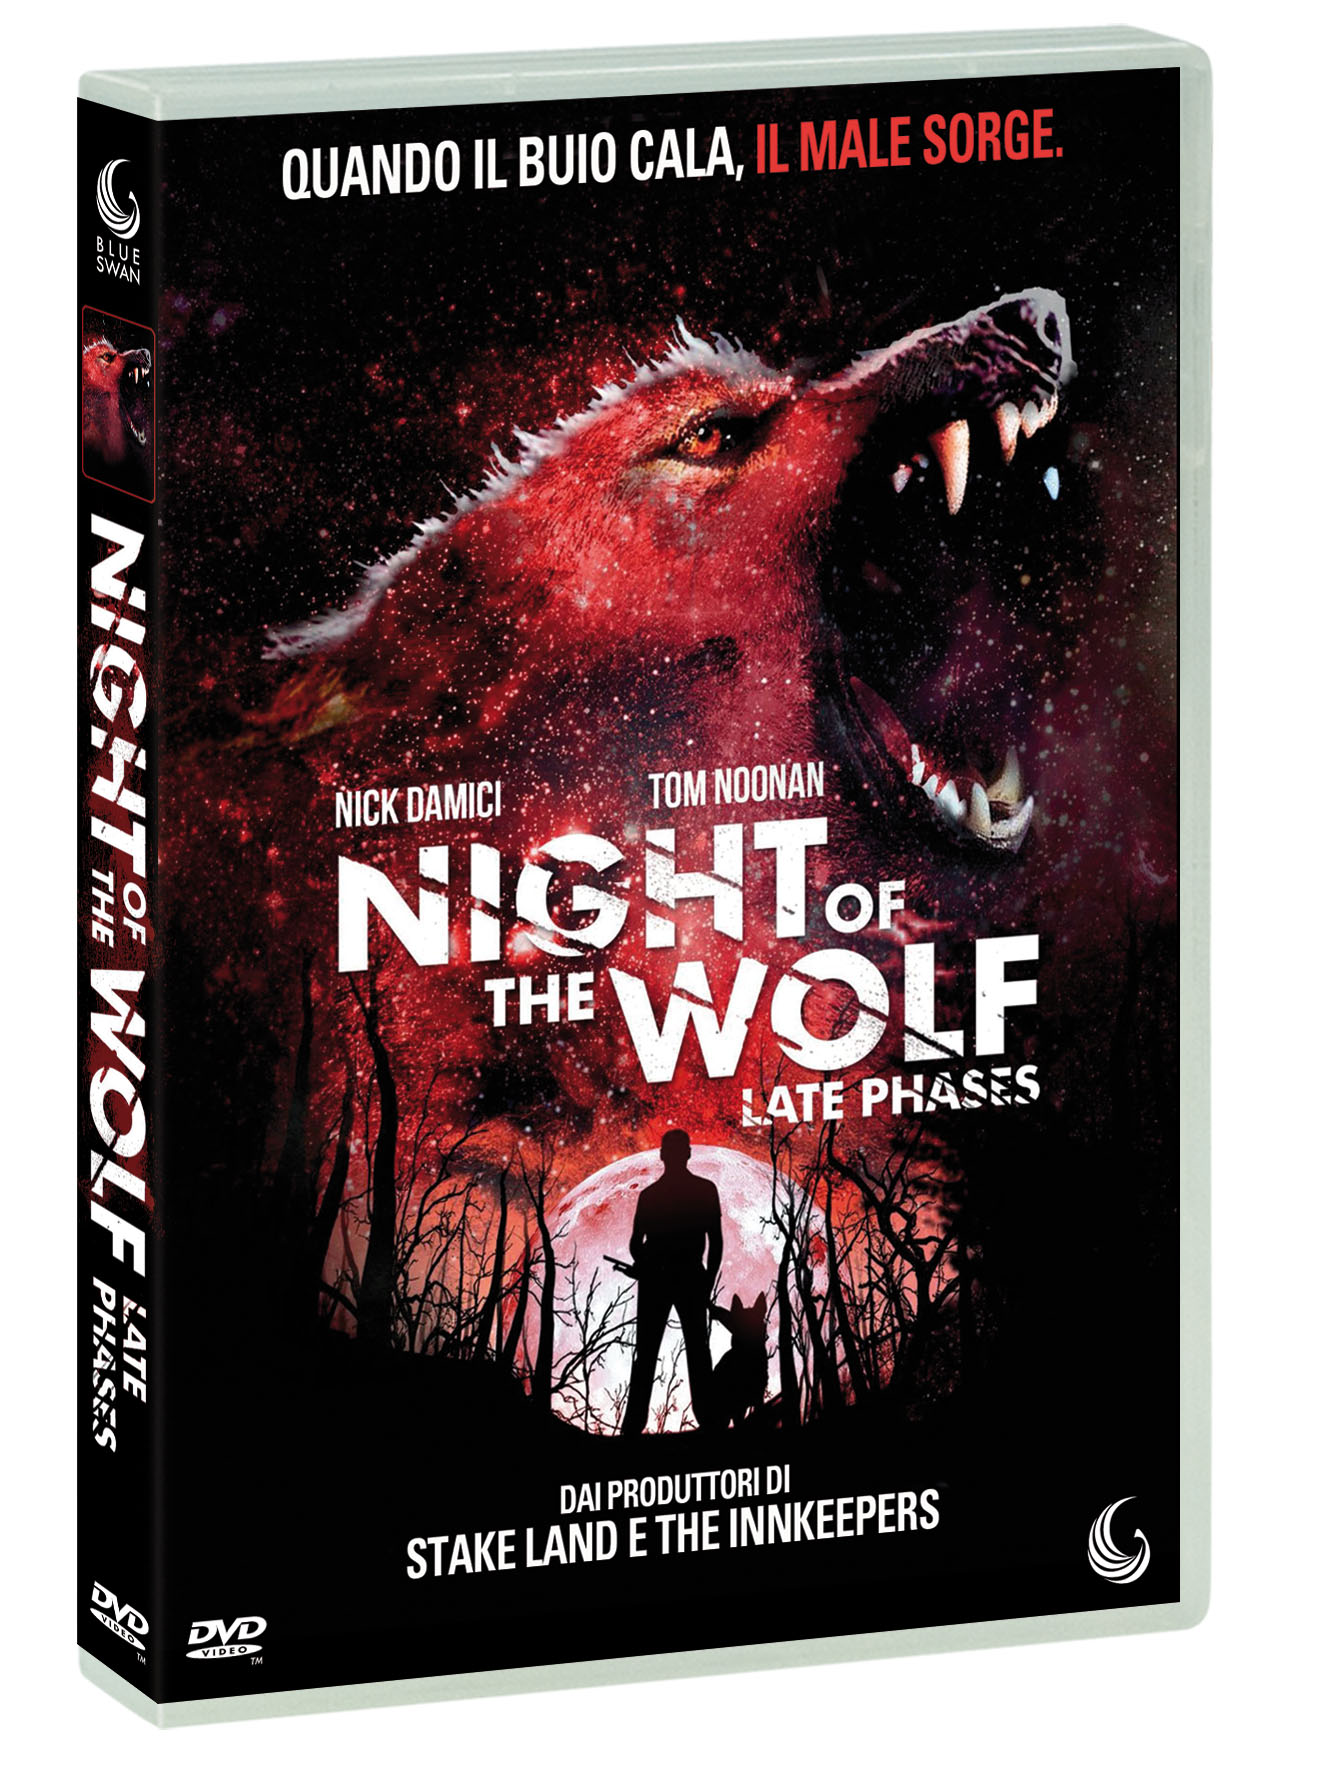 NIGHT OF THE WOLF - LATE PHASES (DVD)